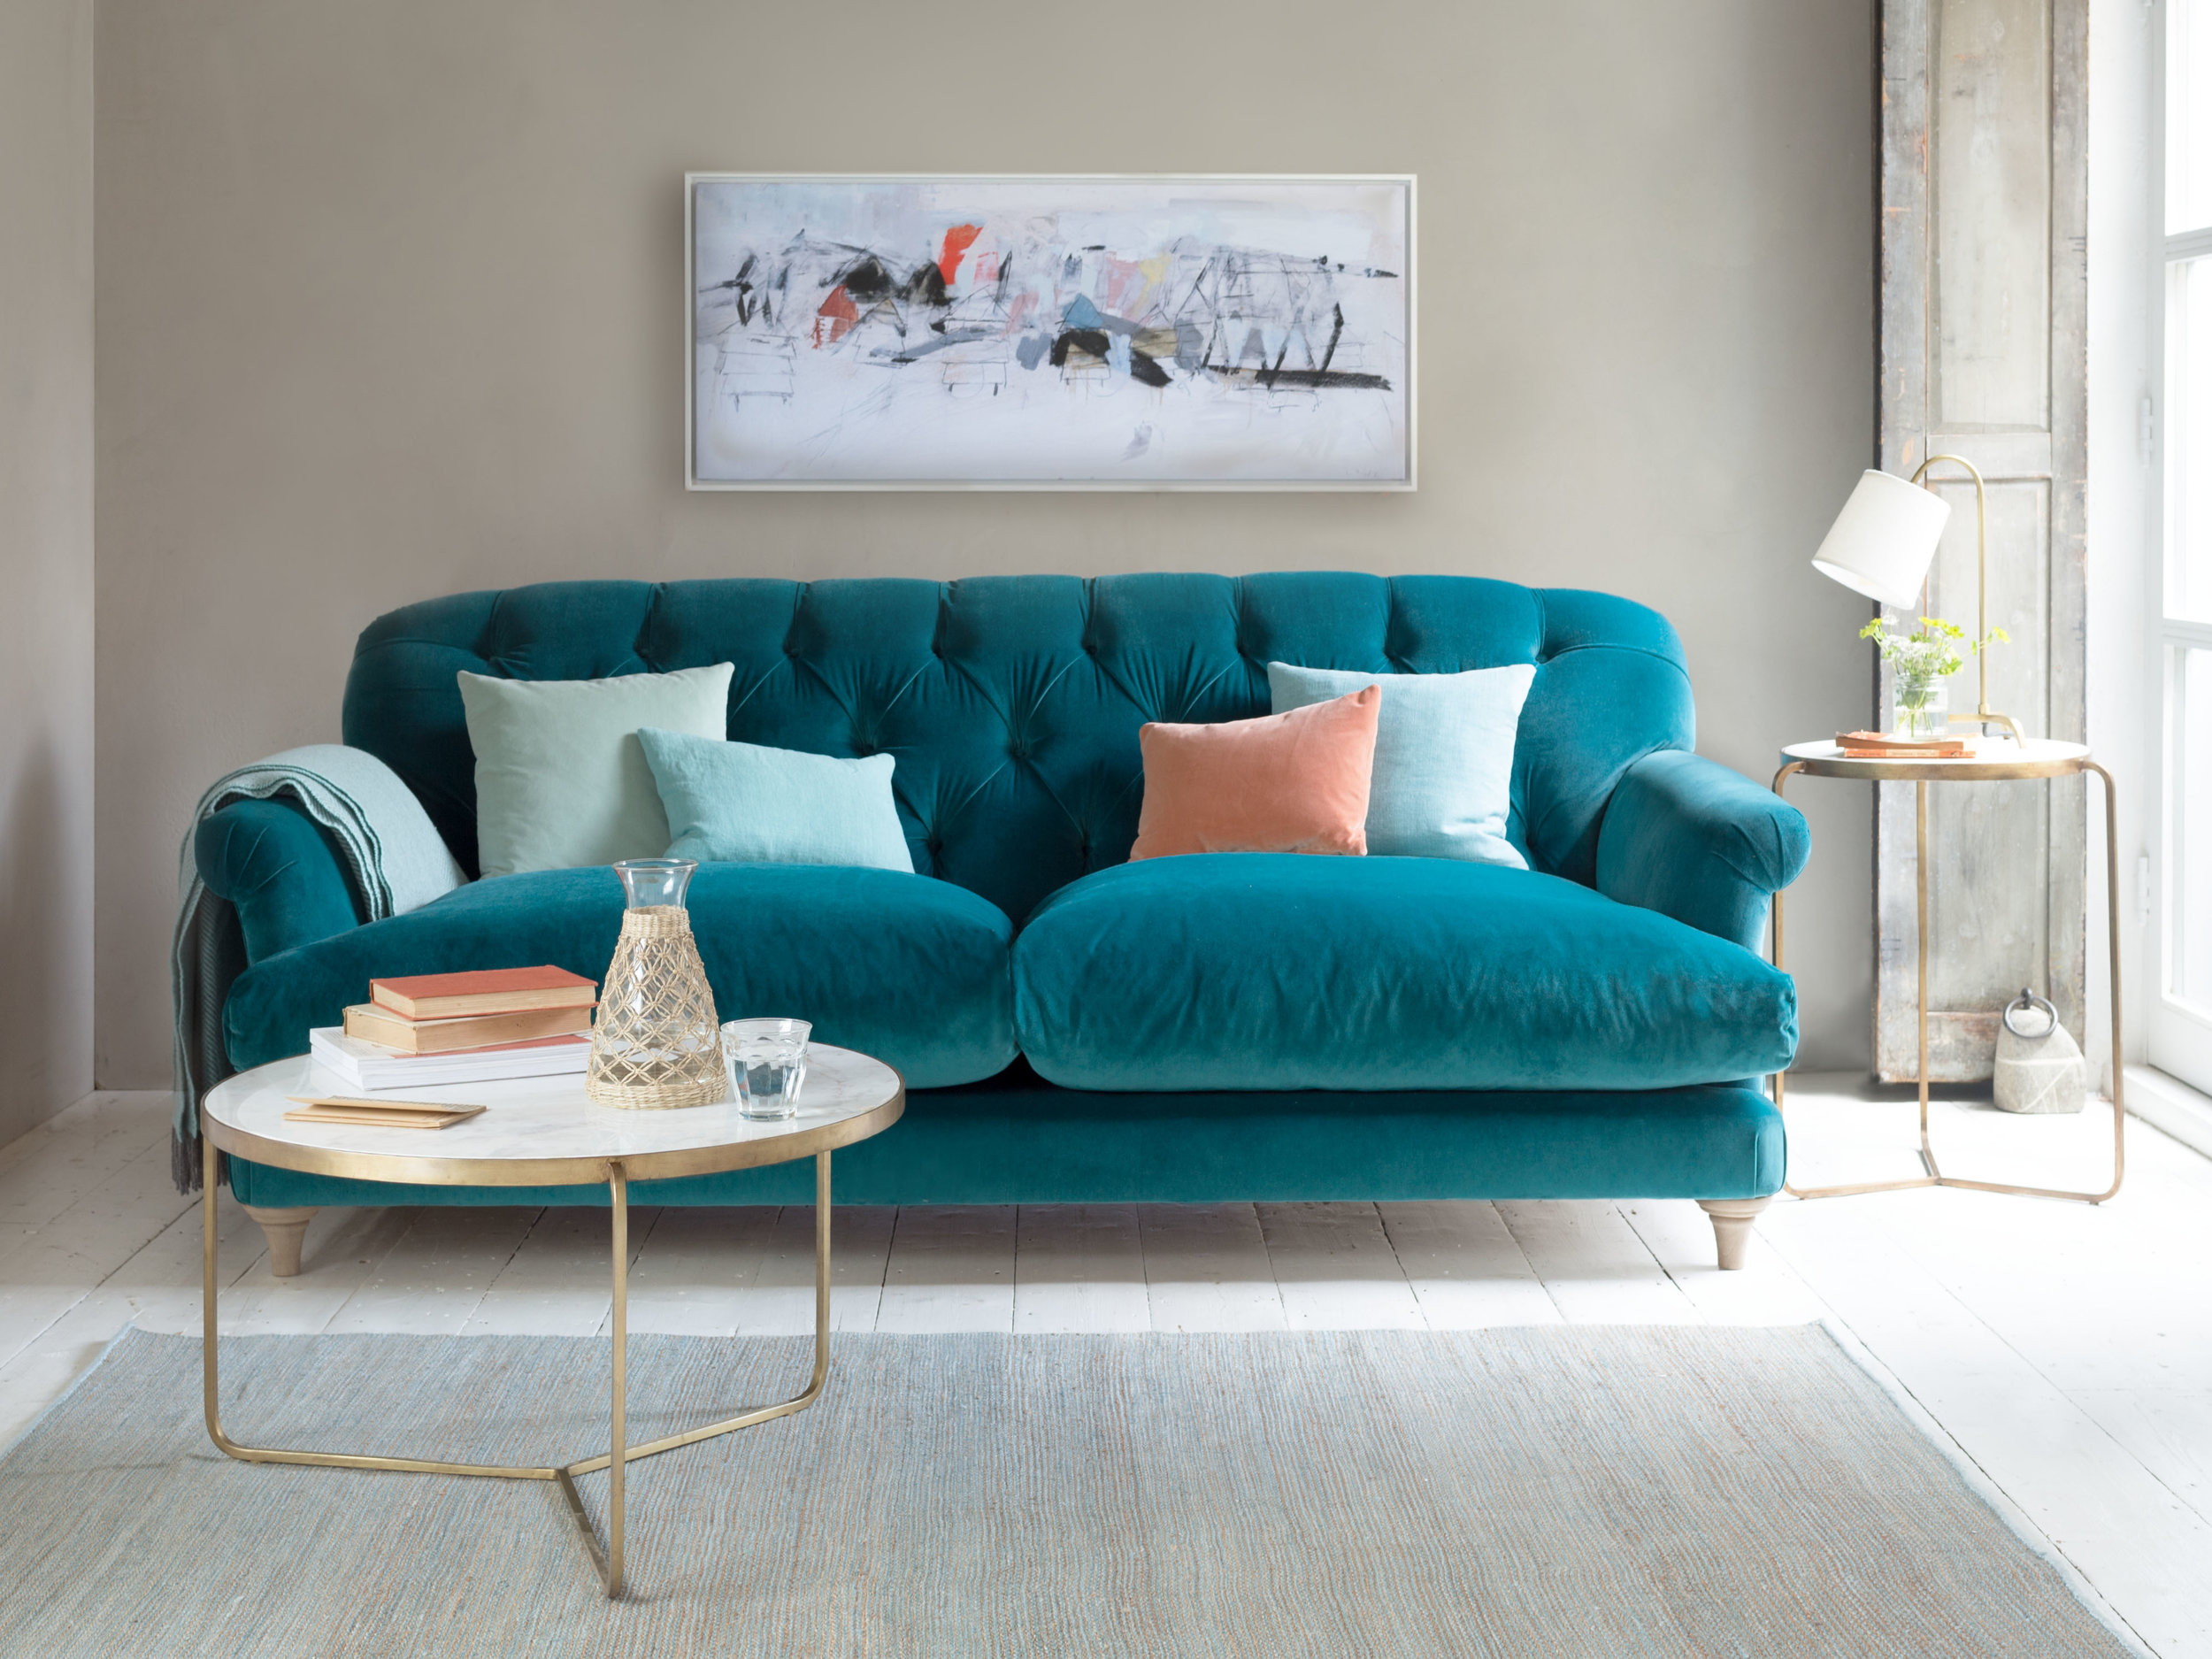 Loaf - NEW Truffle sofa from £1495 high res 2.jpg